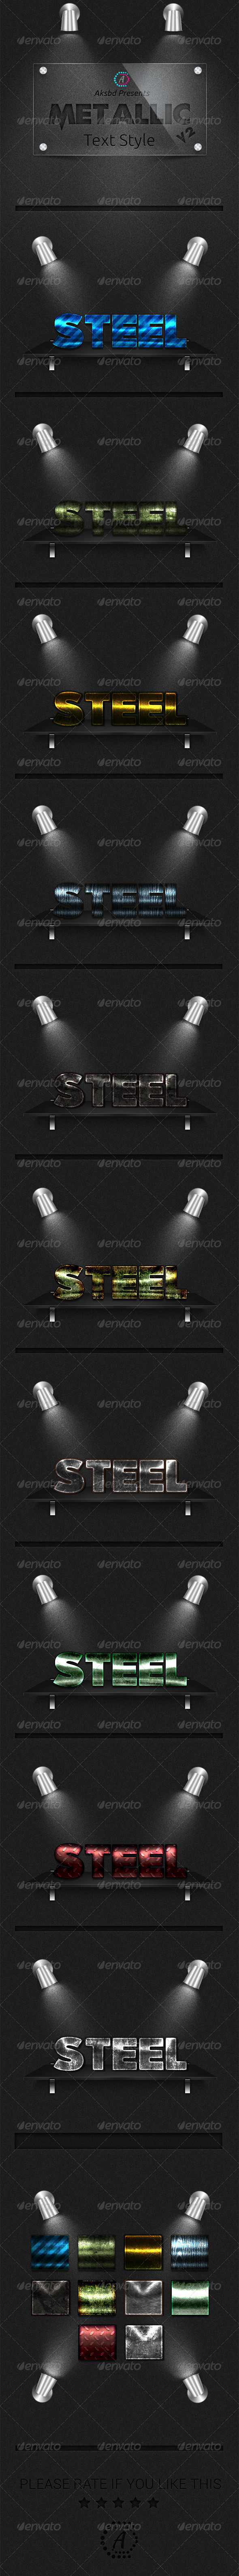 GraphicRiver Metalic Text Styles vol-2 10 UHD Styles 8135969